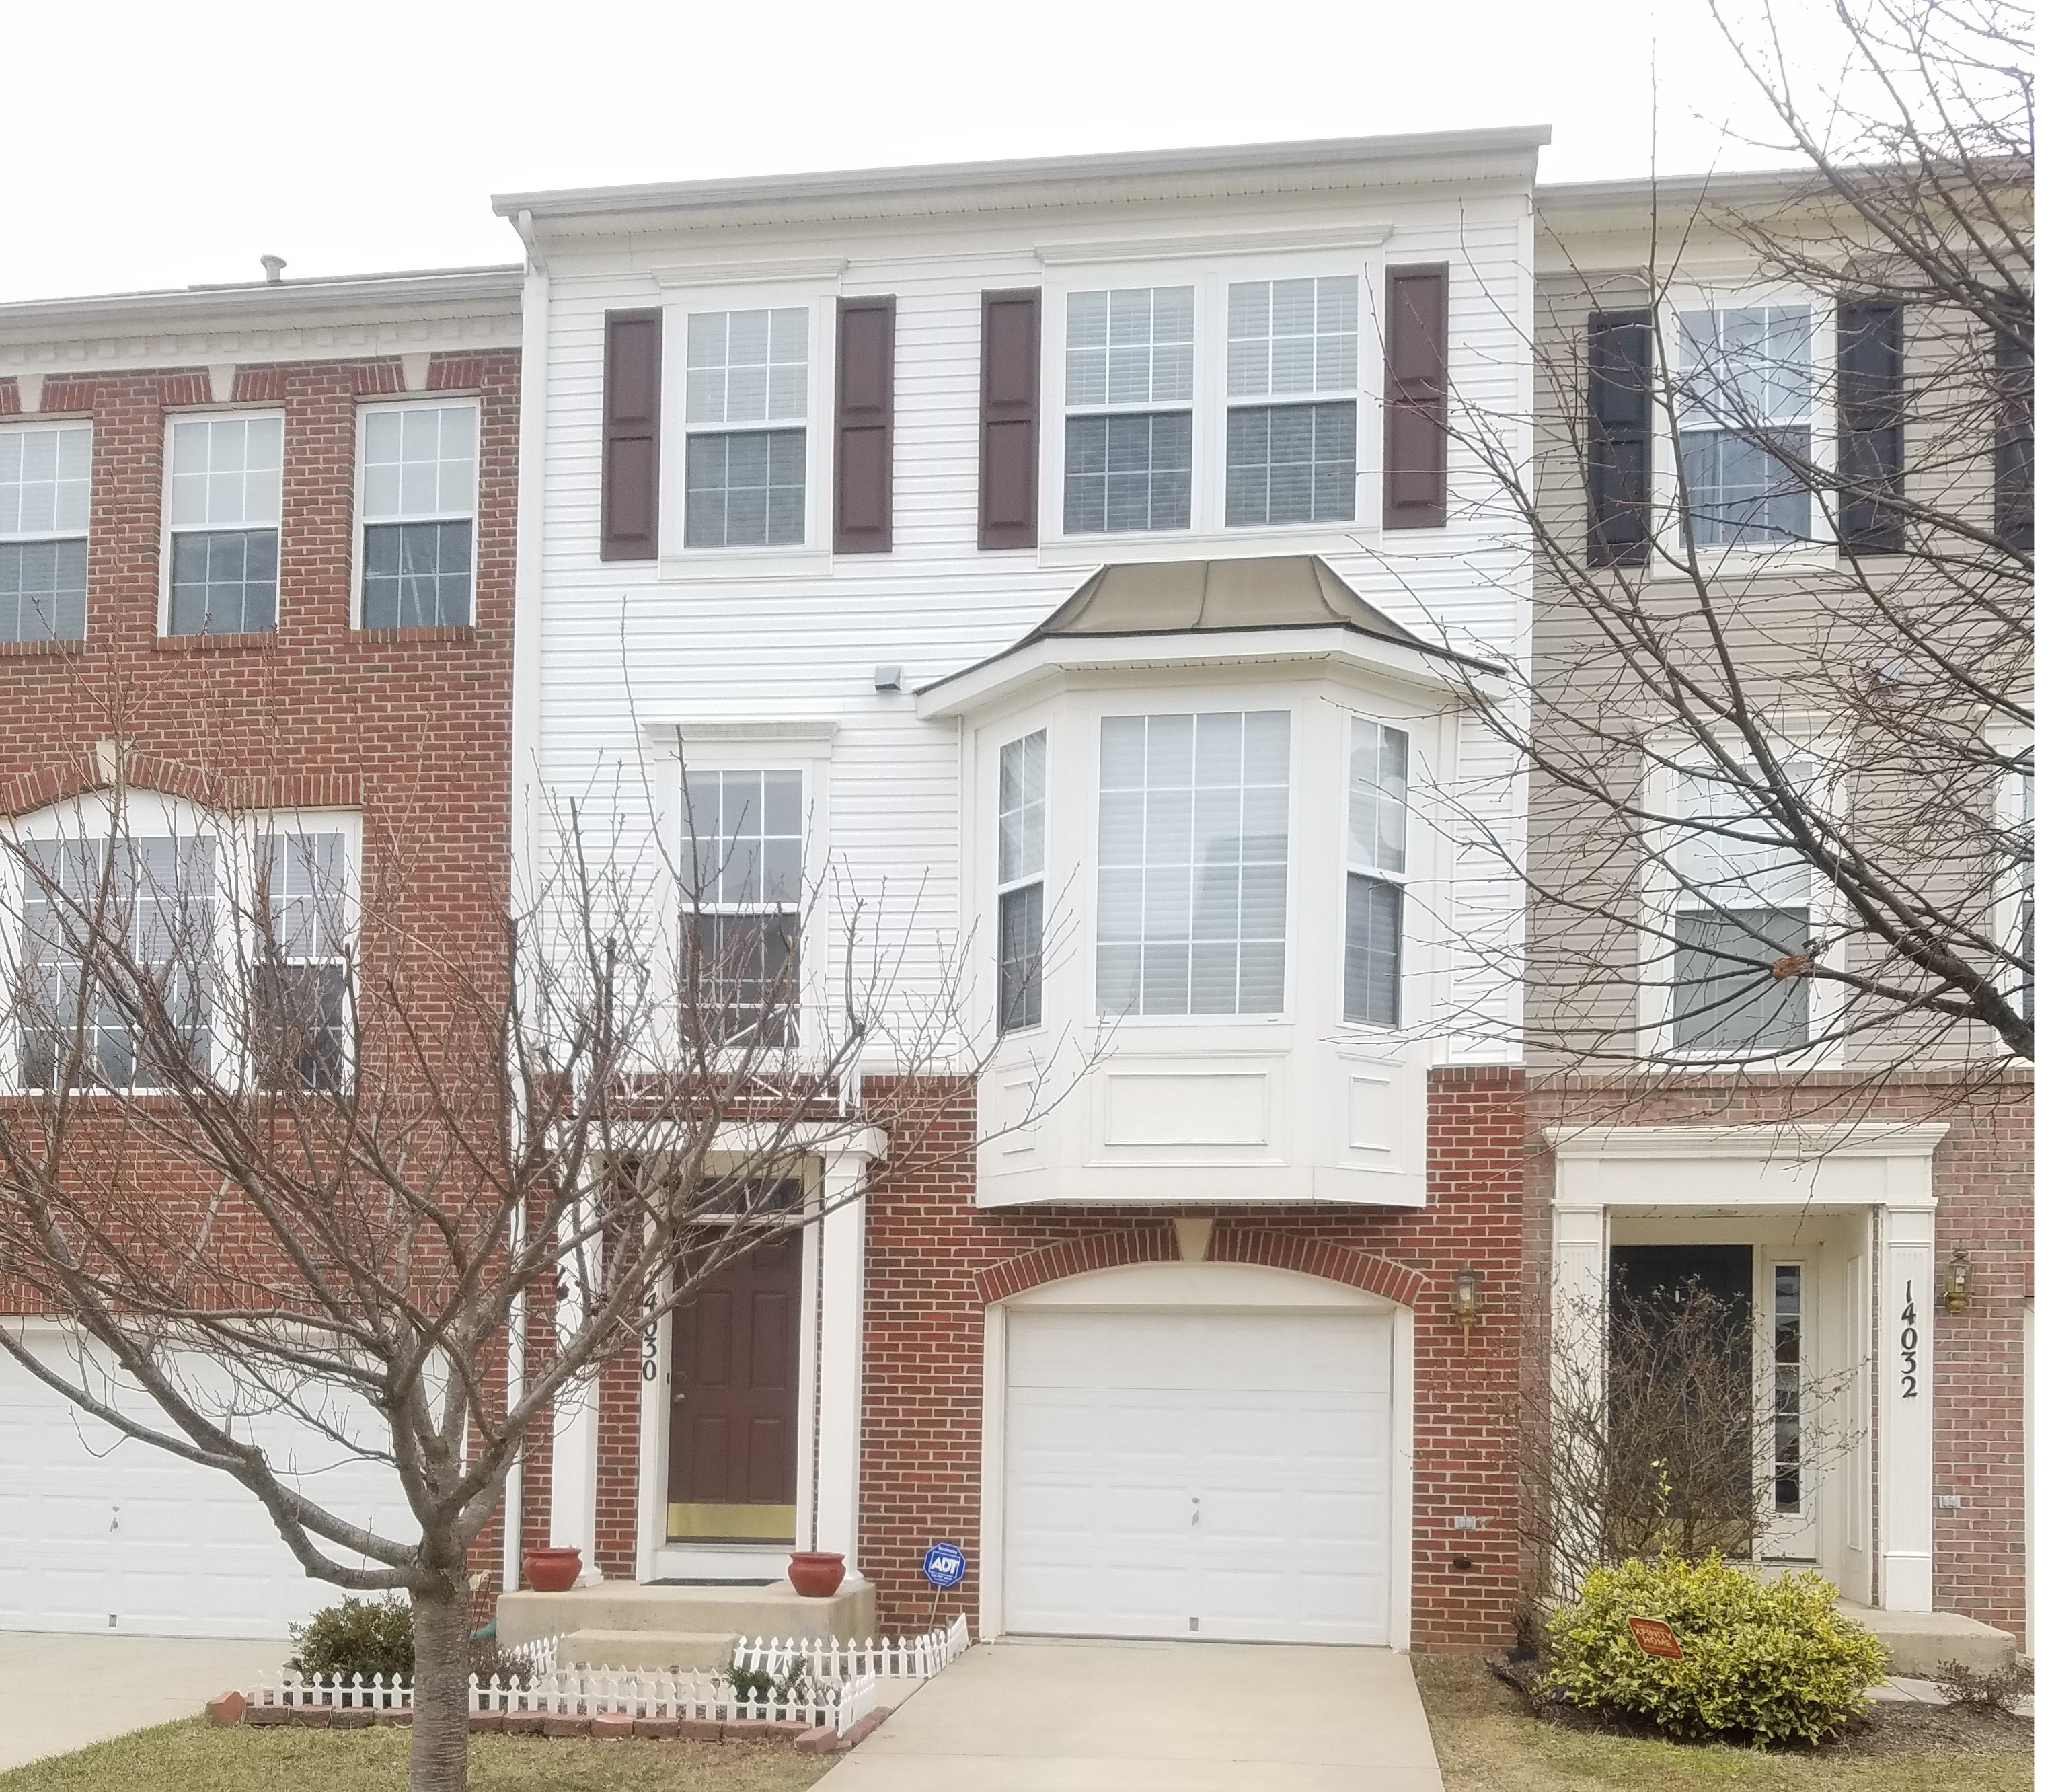 Rental Townhouses: Offered Home To Rent In Germantown, MD